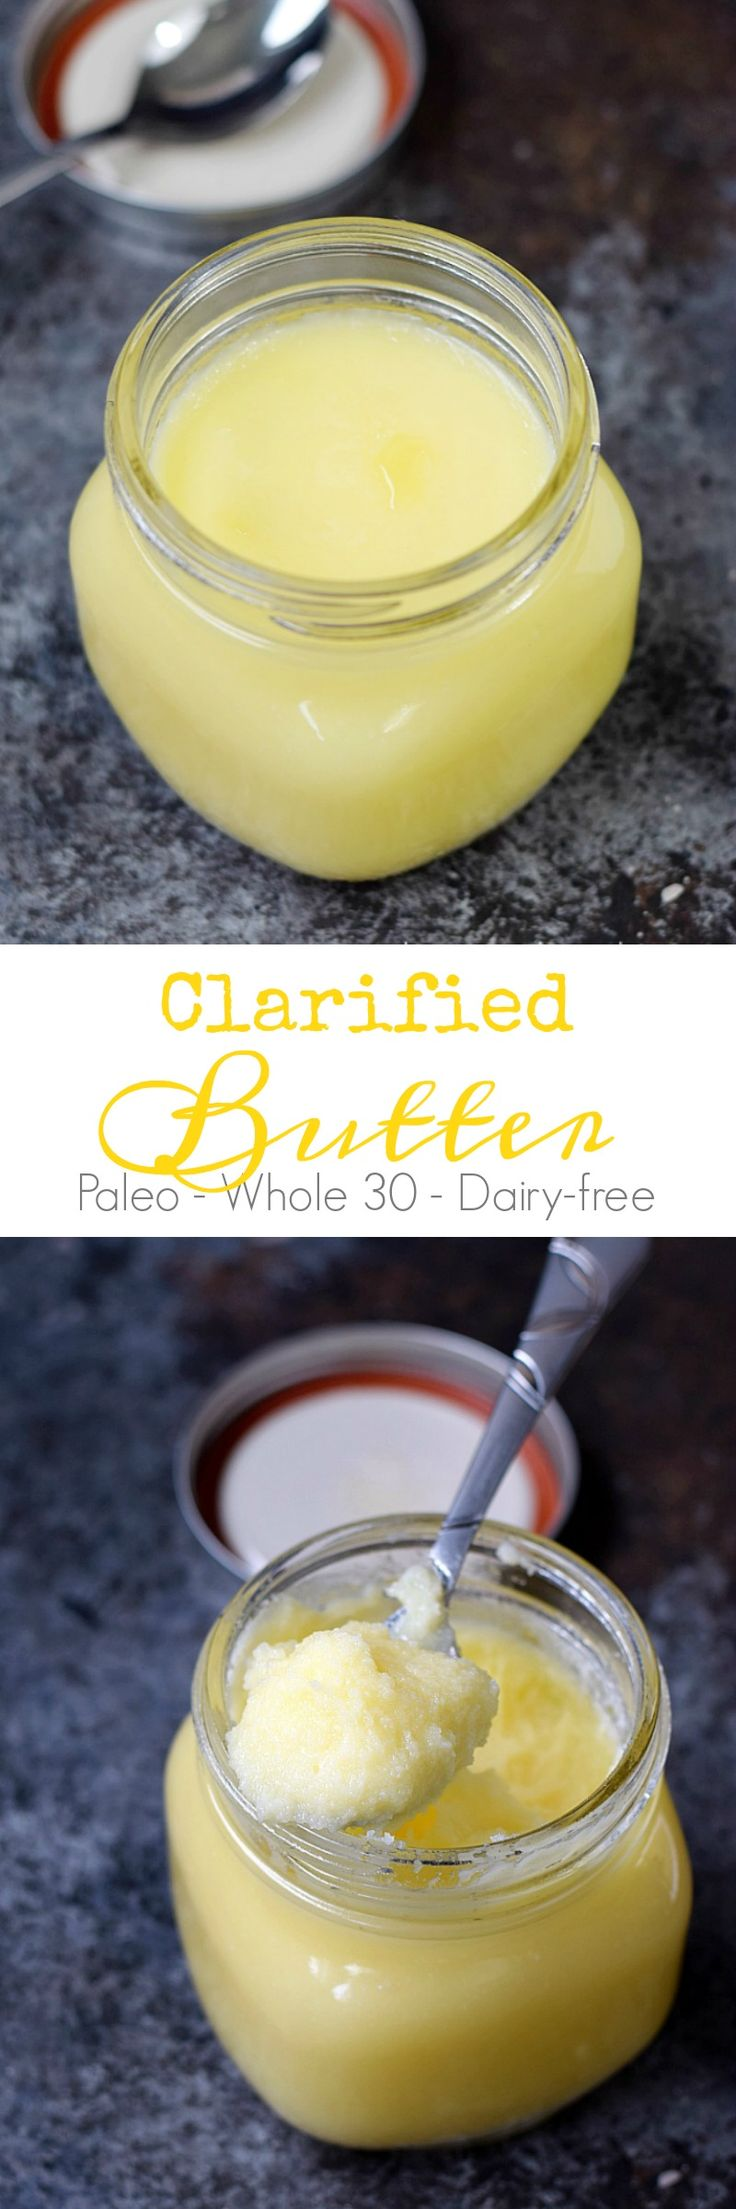 This Clarified Butter is so easy to make, you can always have some on hand for your favorite Paleo and Whole 30 recipes | cookingwithcurls.com